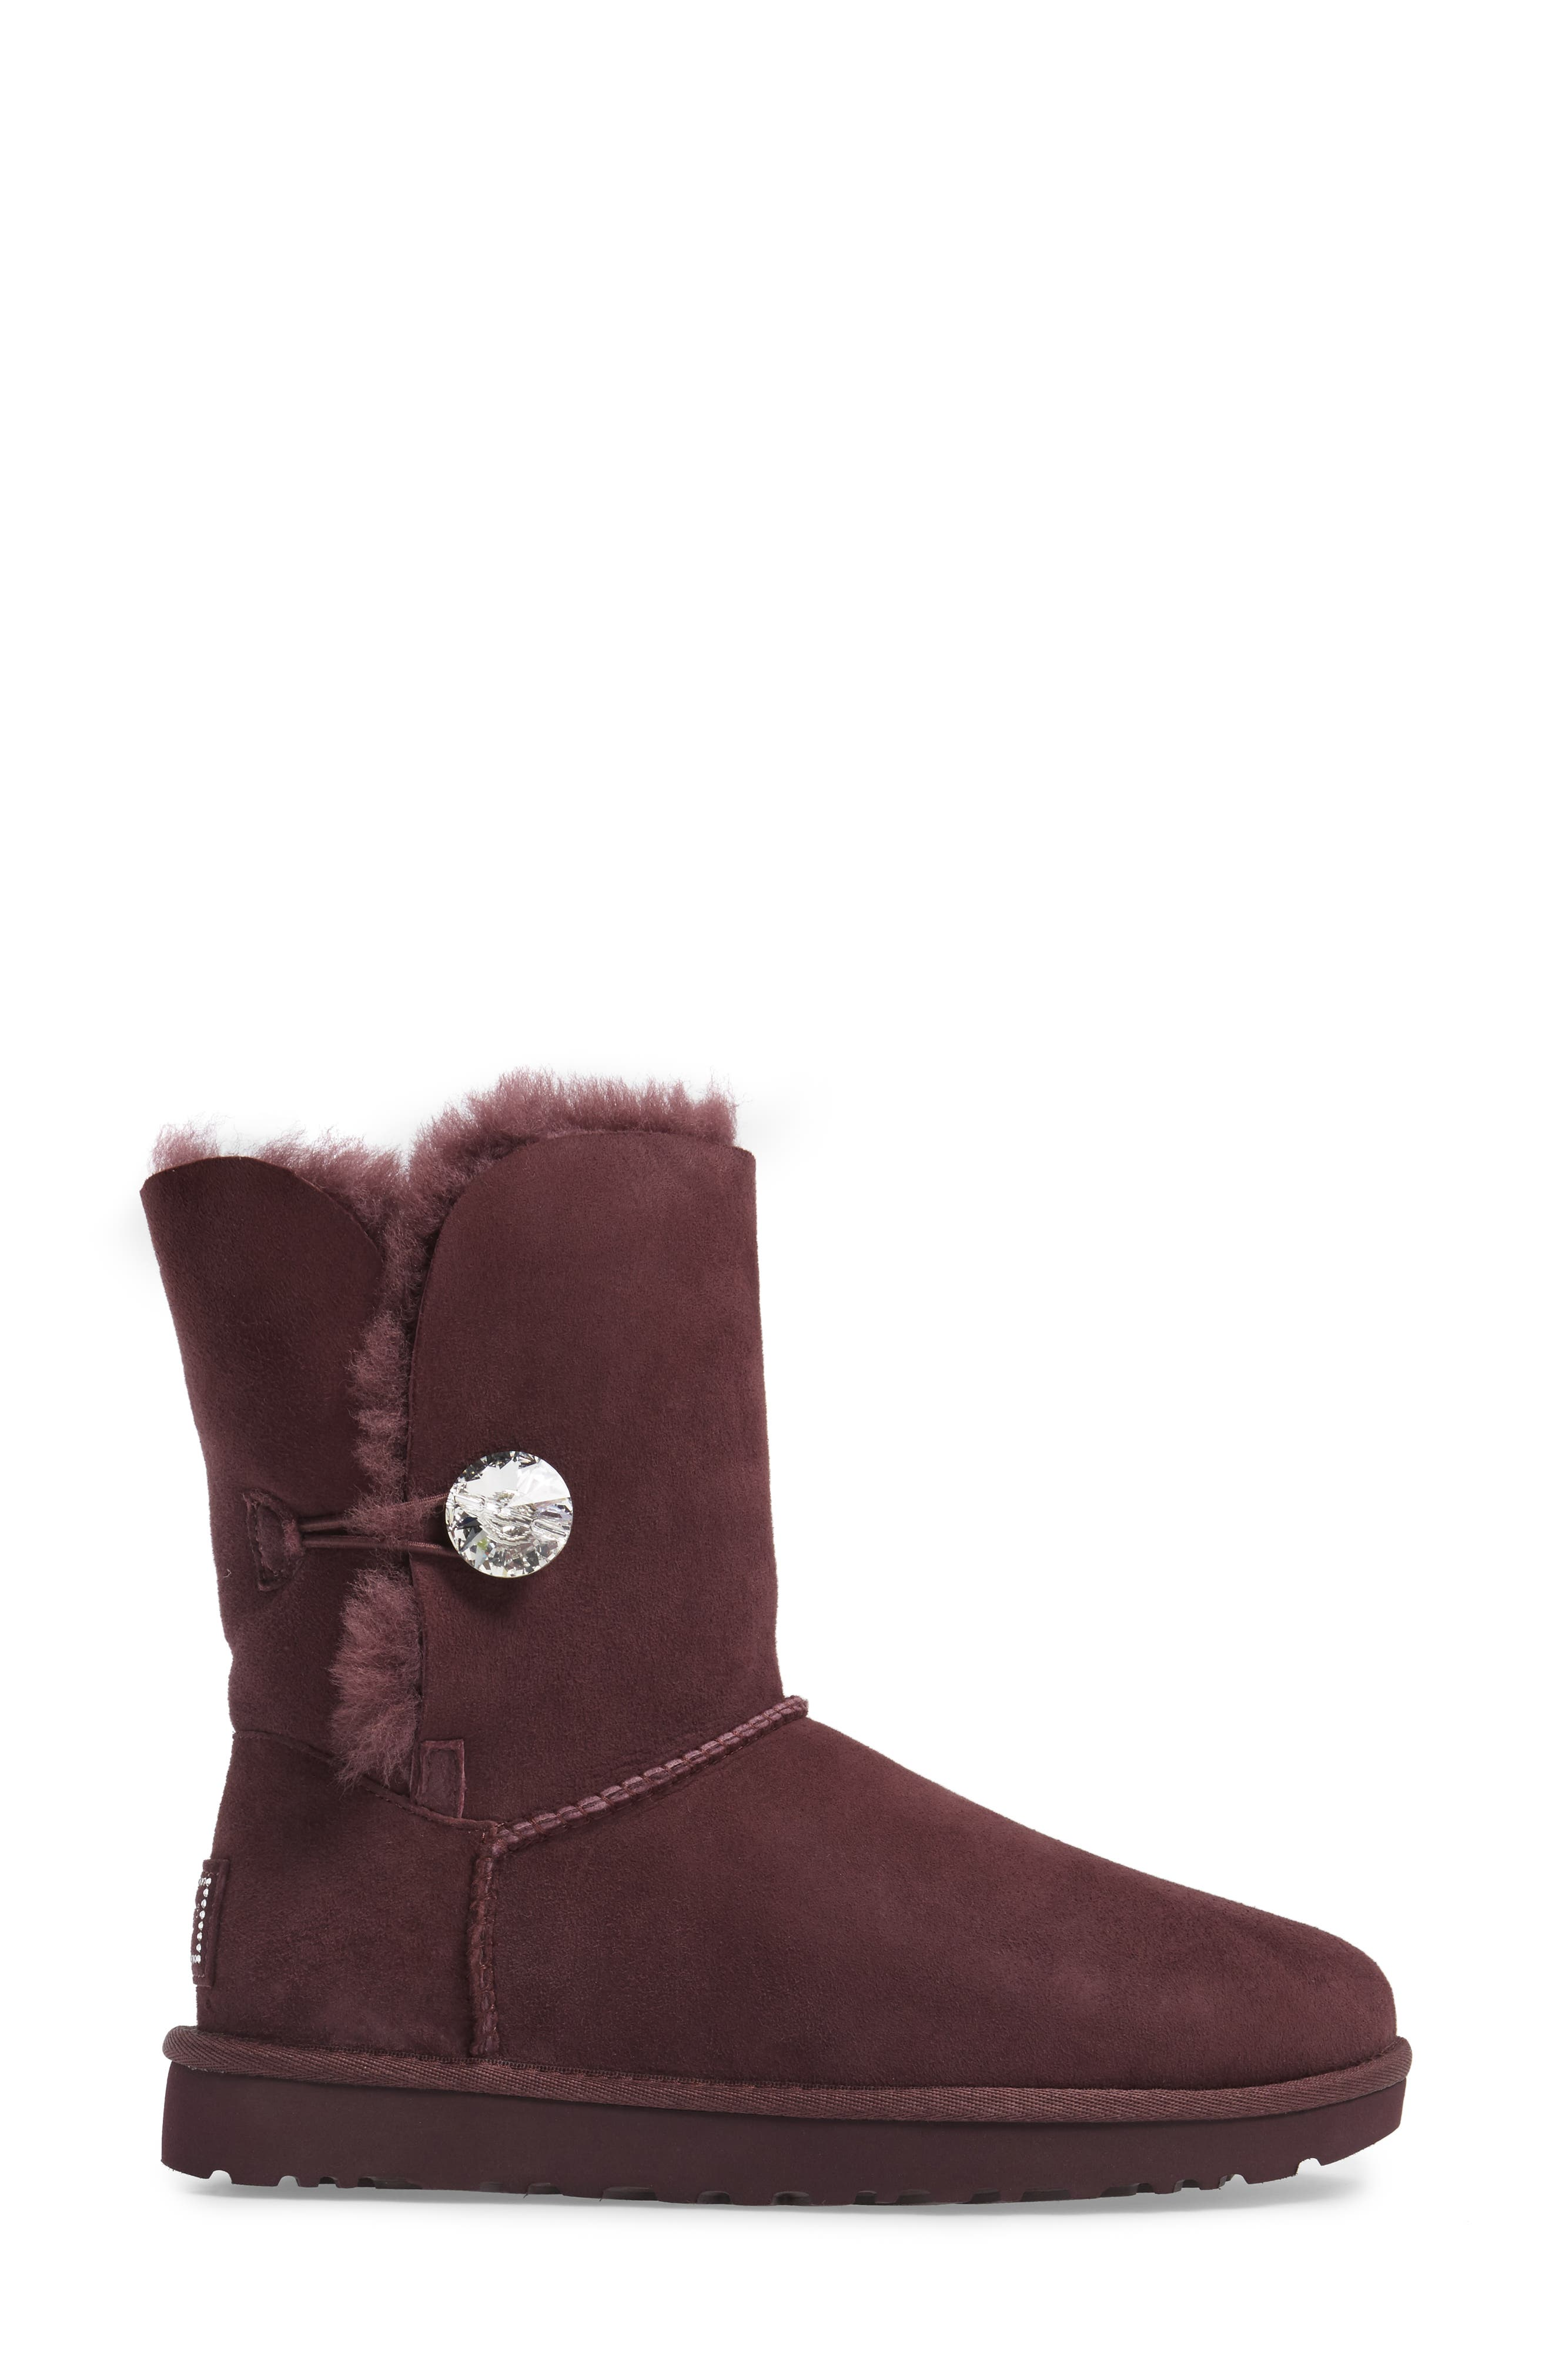 Alternate Image 3  - UGG® Bailey Button Bling Genuine Shearling Boot (Women)